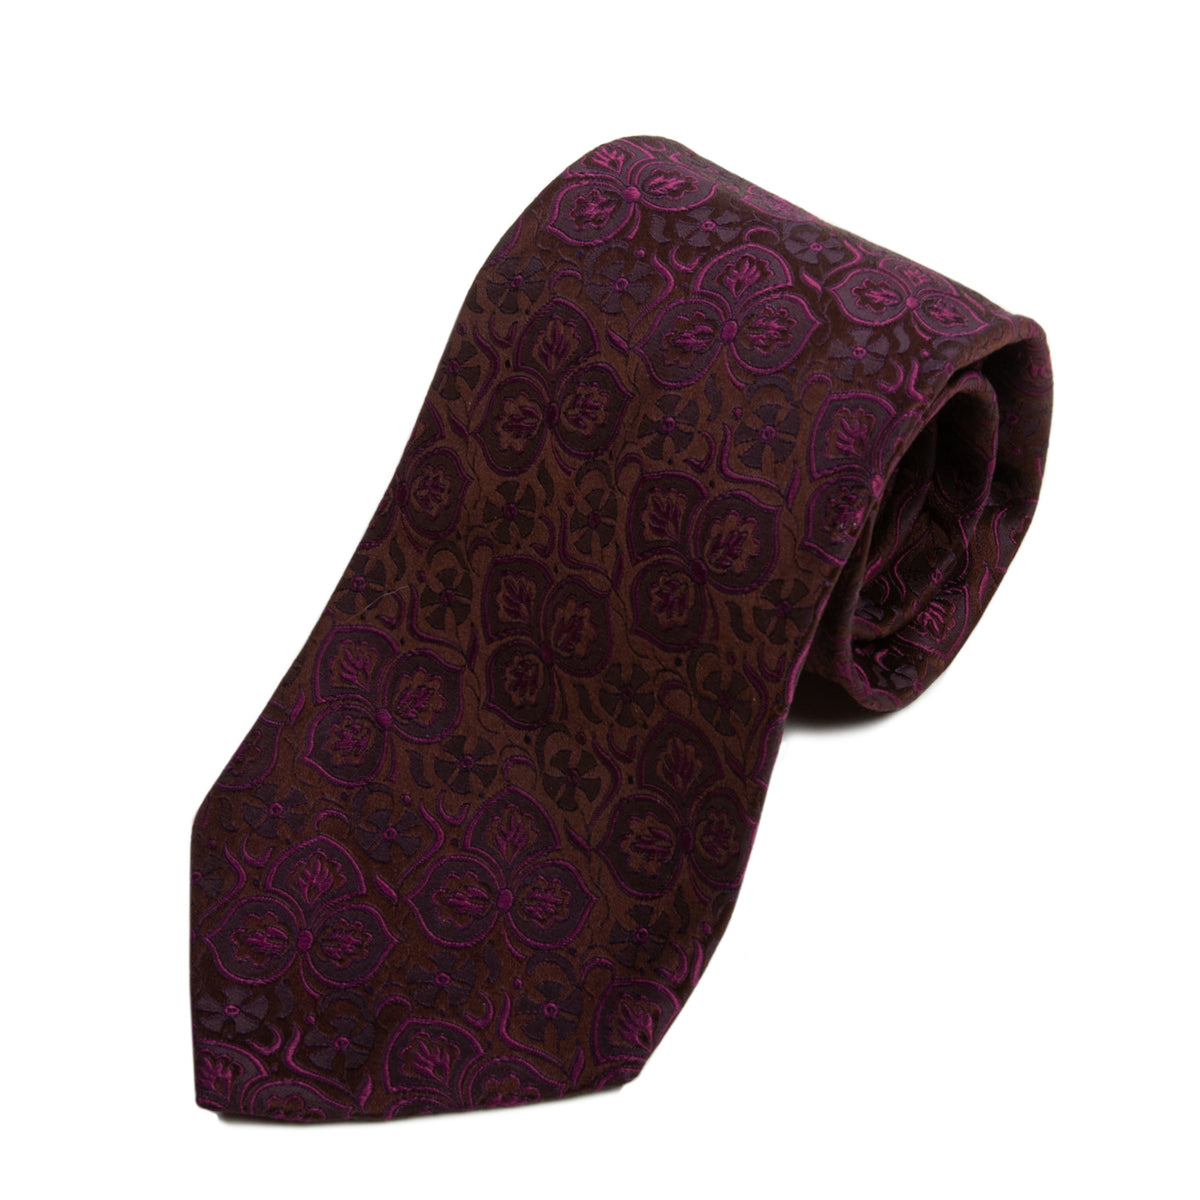 Dolce & Gabbana Merlot on Brown Floral Tie for Luxmrkt.com Menswear Consignment Edmonton